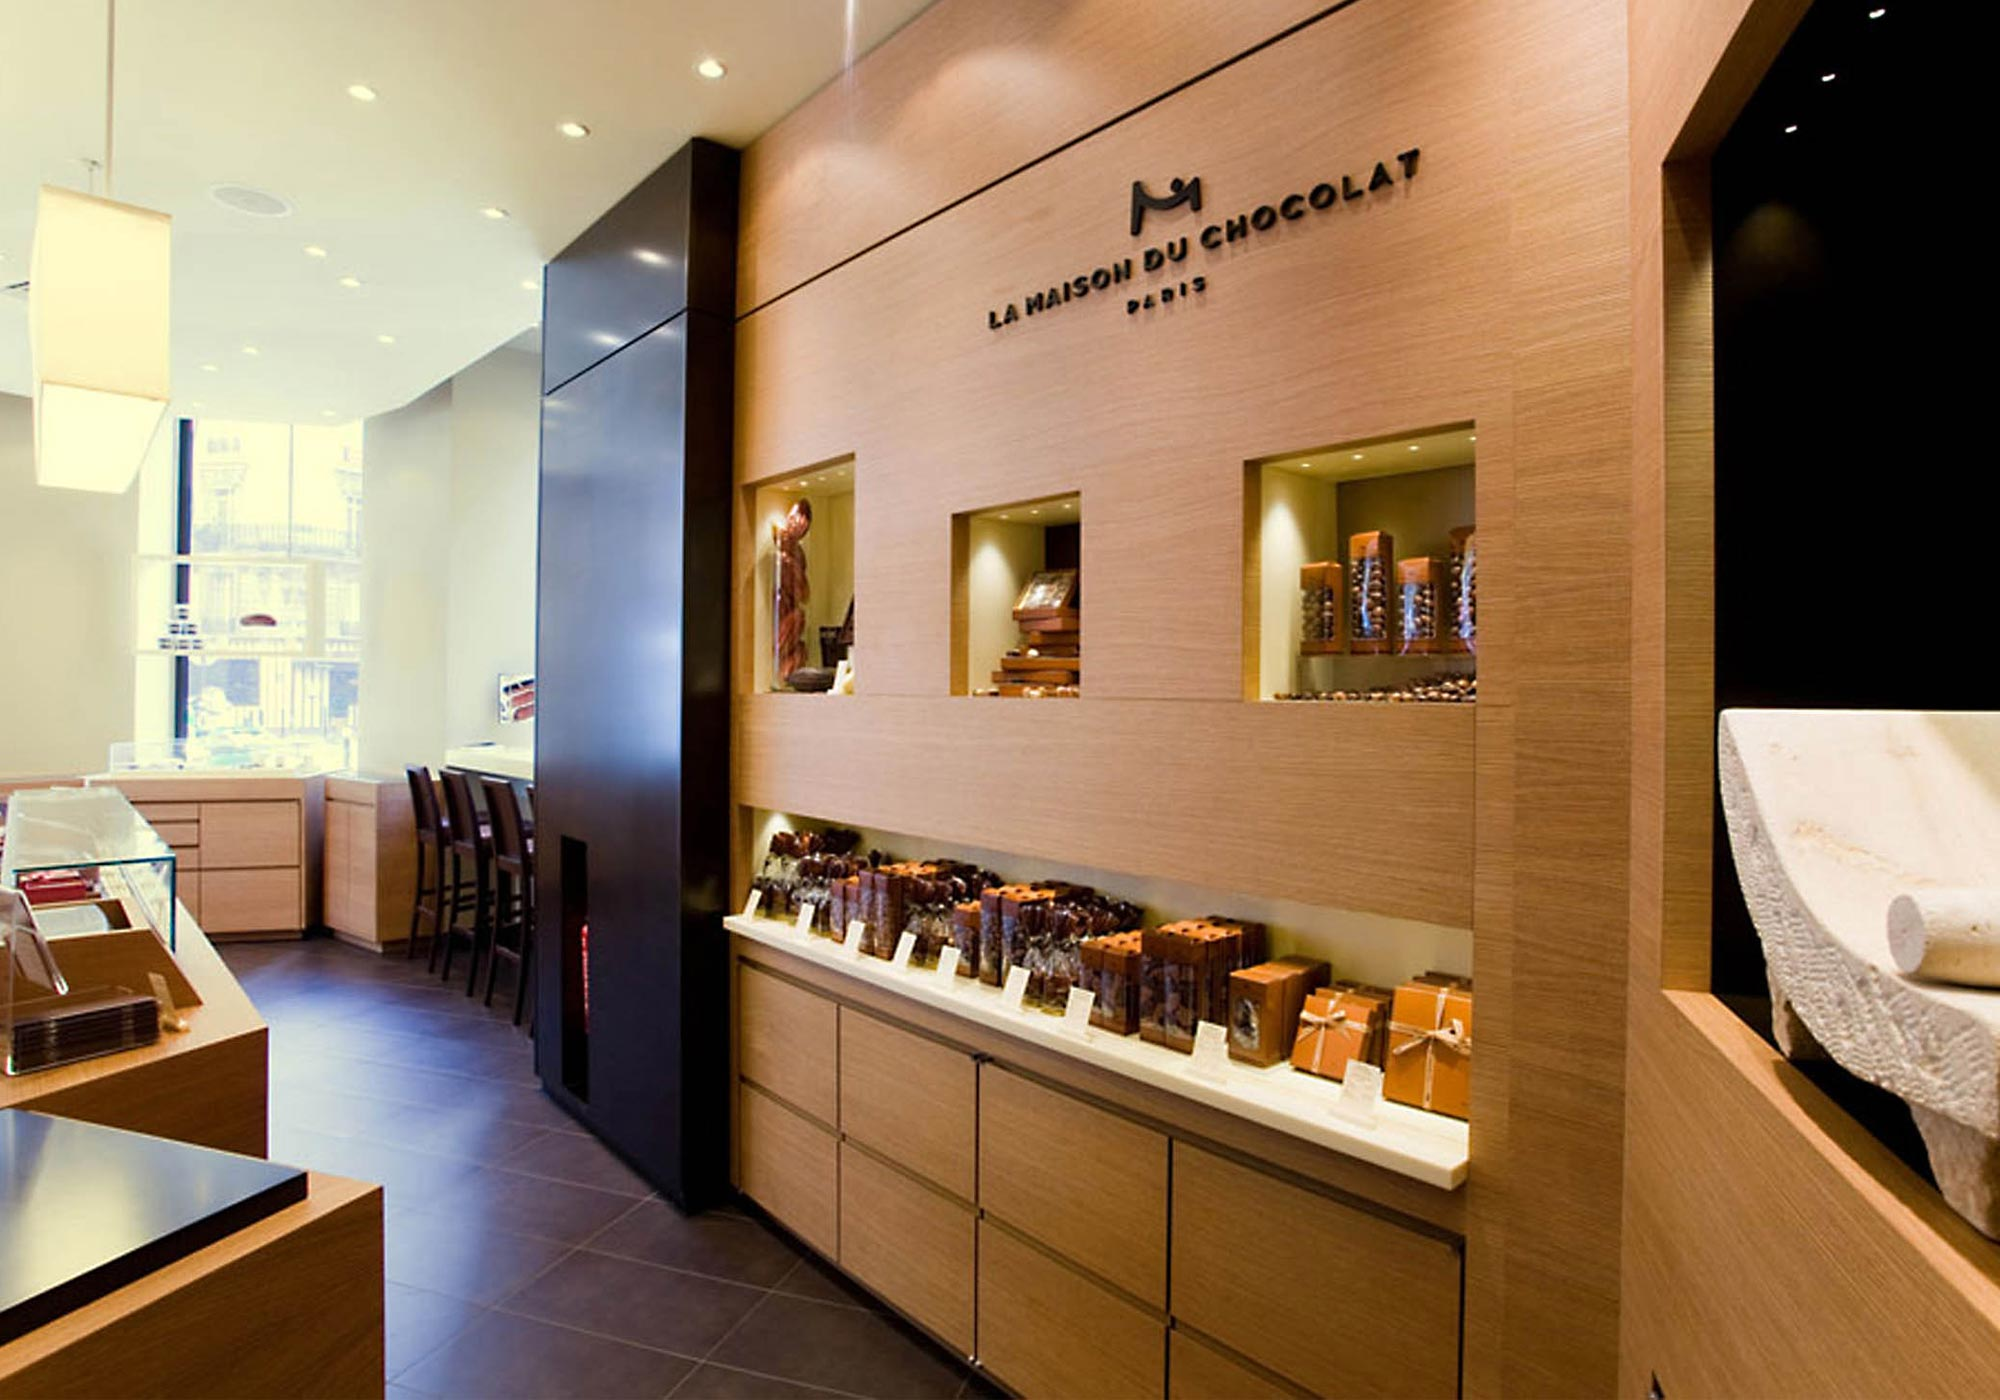 La maison du chocolat desdoigts associ s global for La maison du design